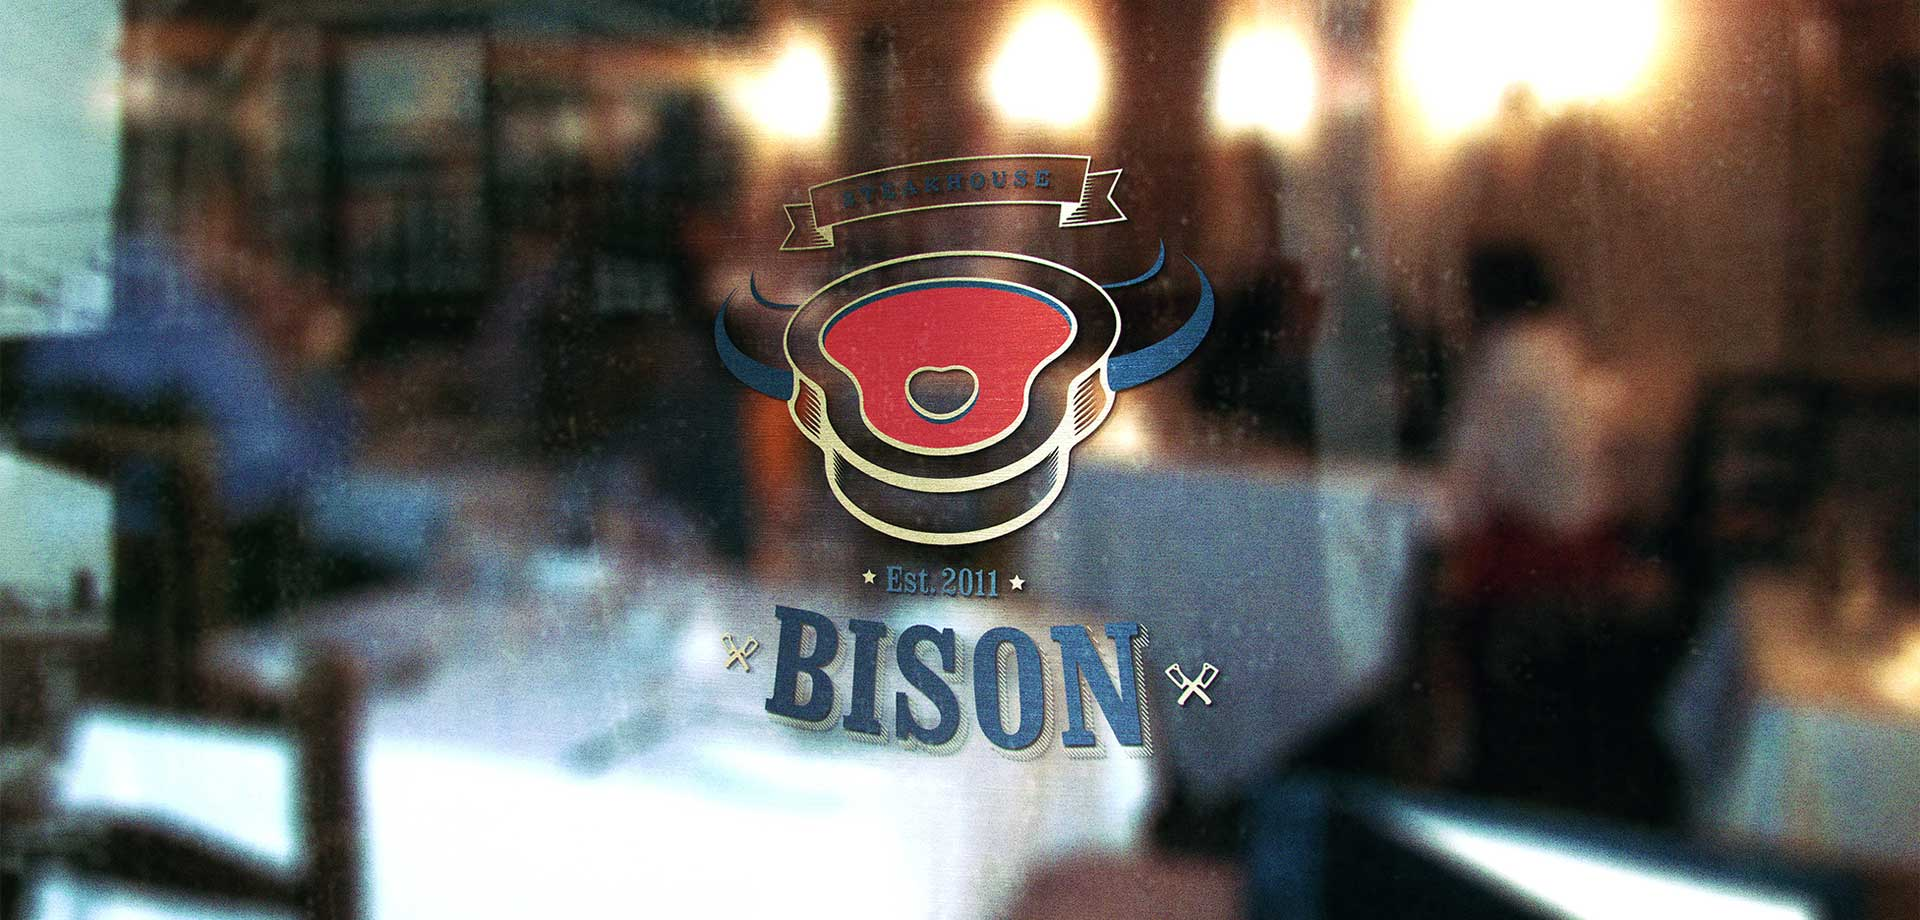 Дизайн сайта и брендинг bison steakhouse